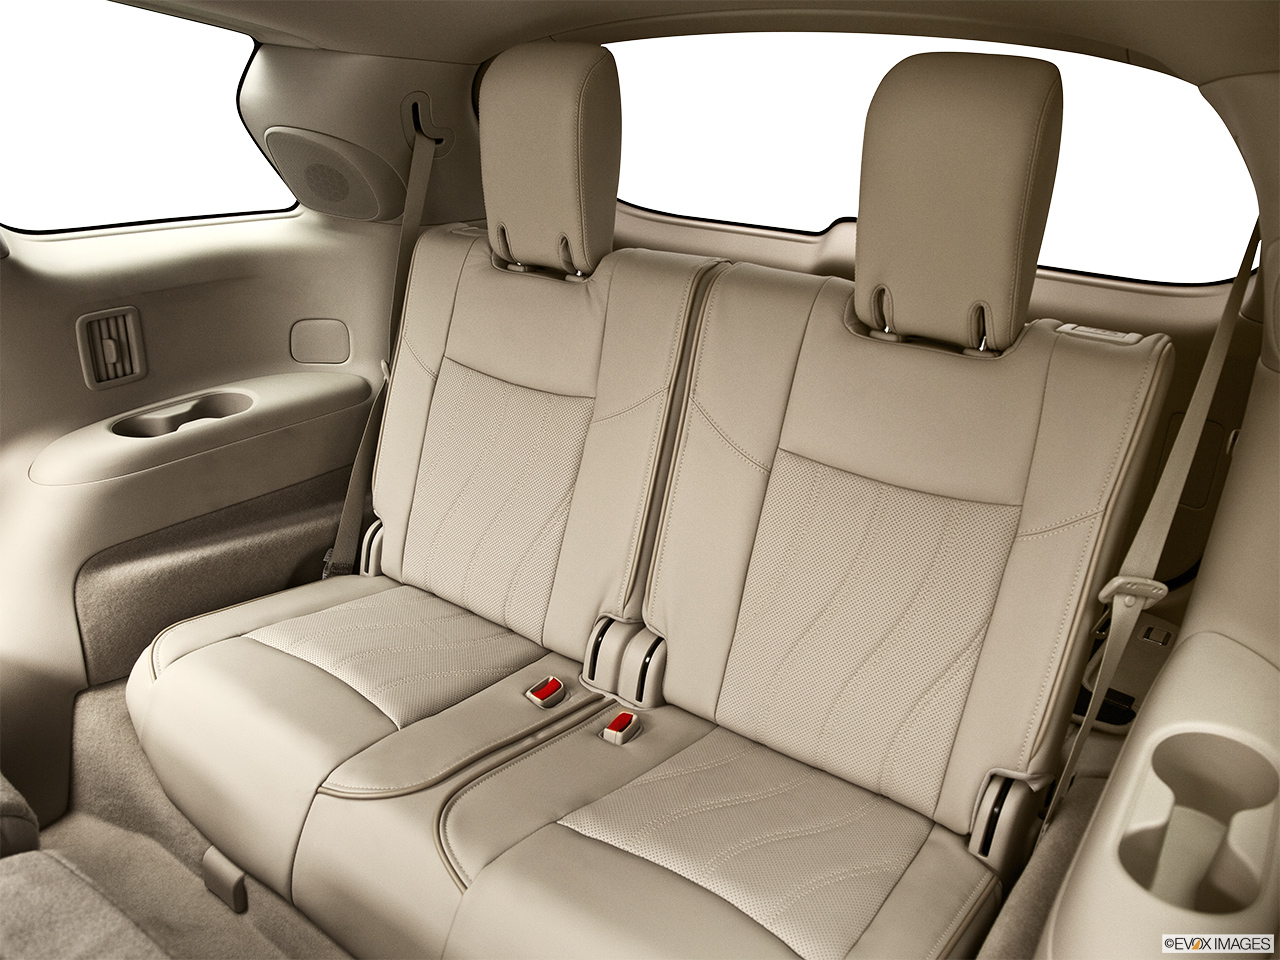 2013 Infiniti JX JX35 3rd row seat from Driver Side.